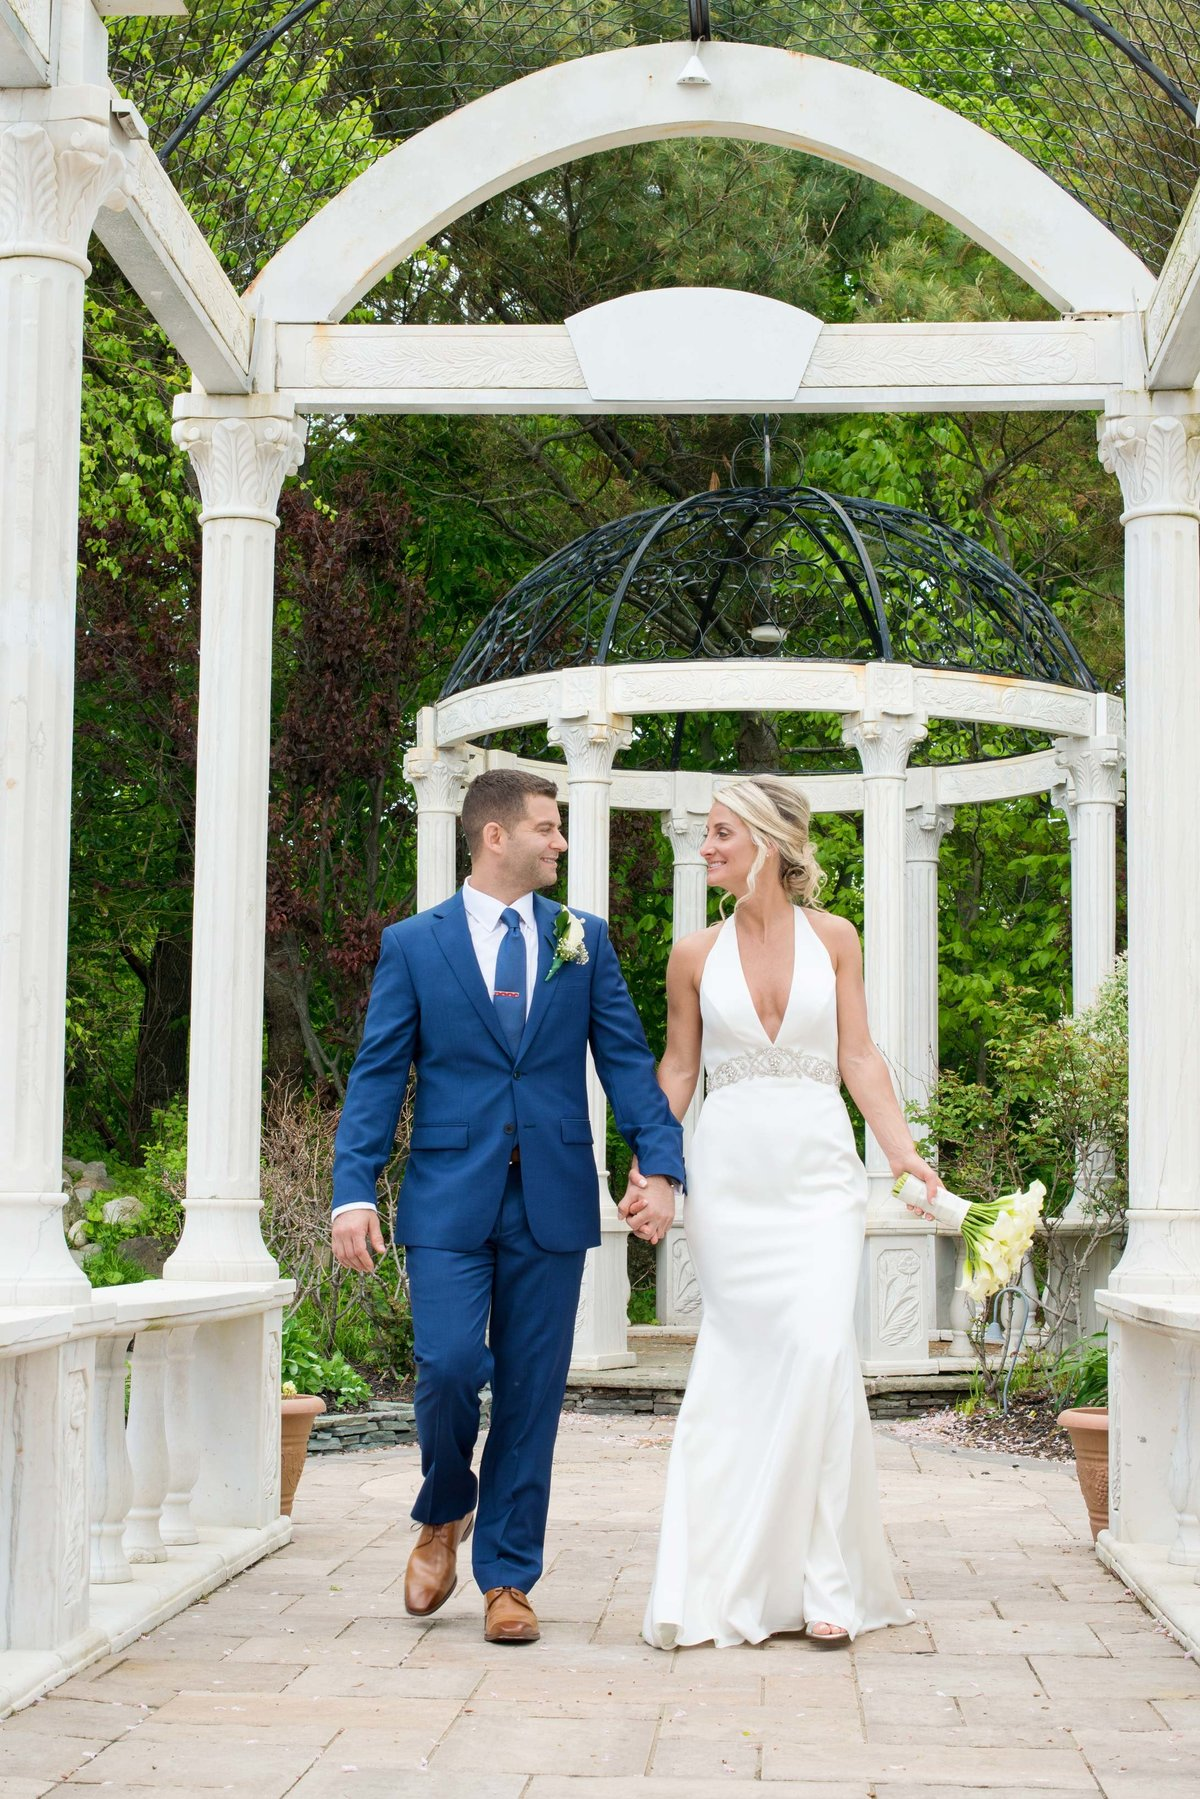 Candid wedding photos at Giorgio's Baiting Hollow